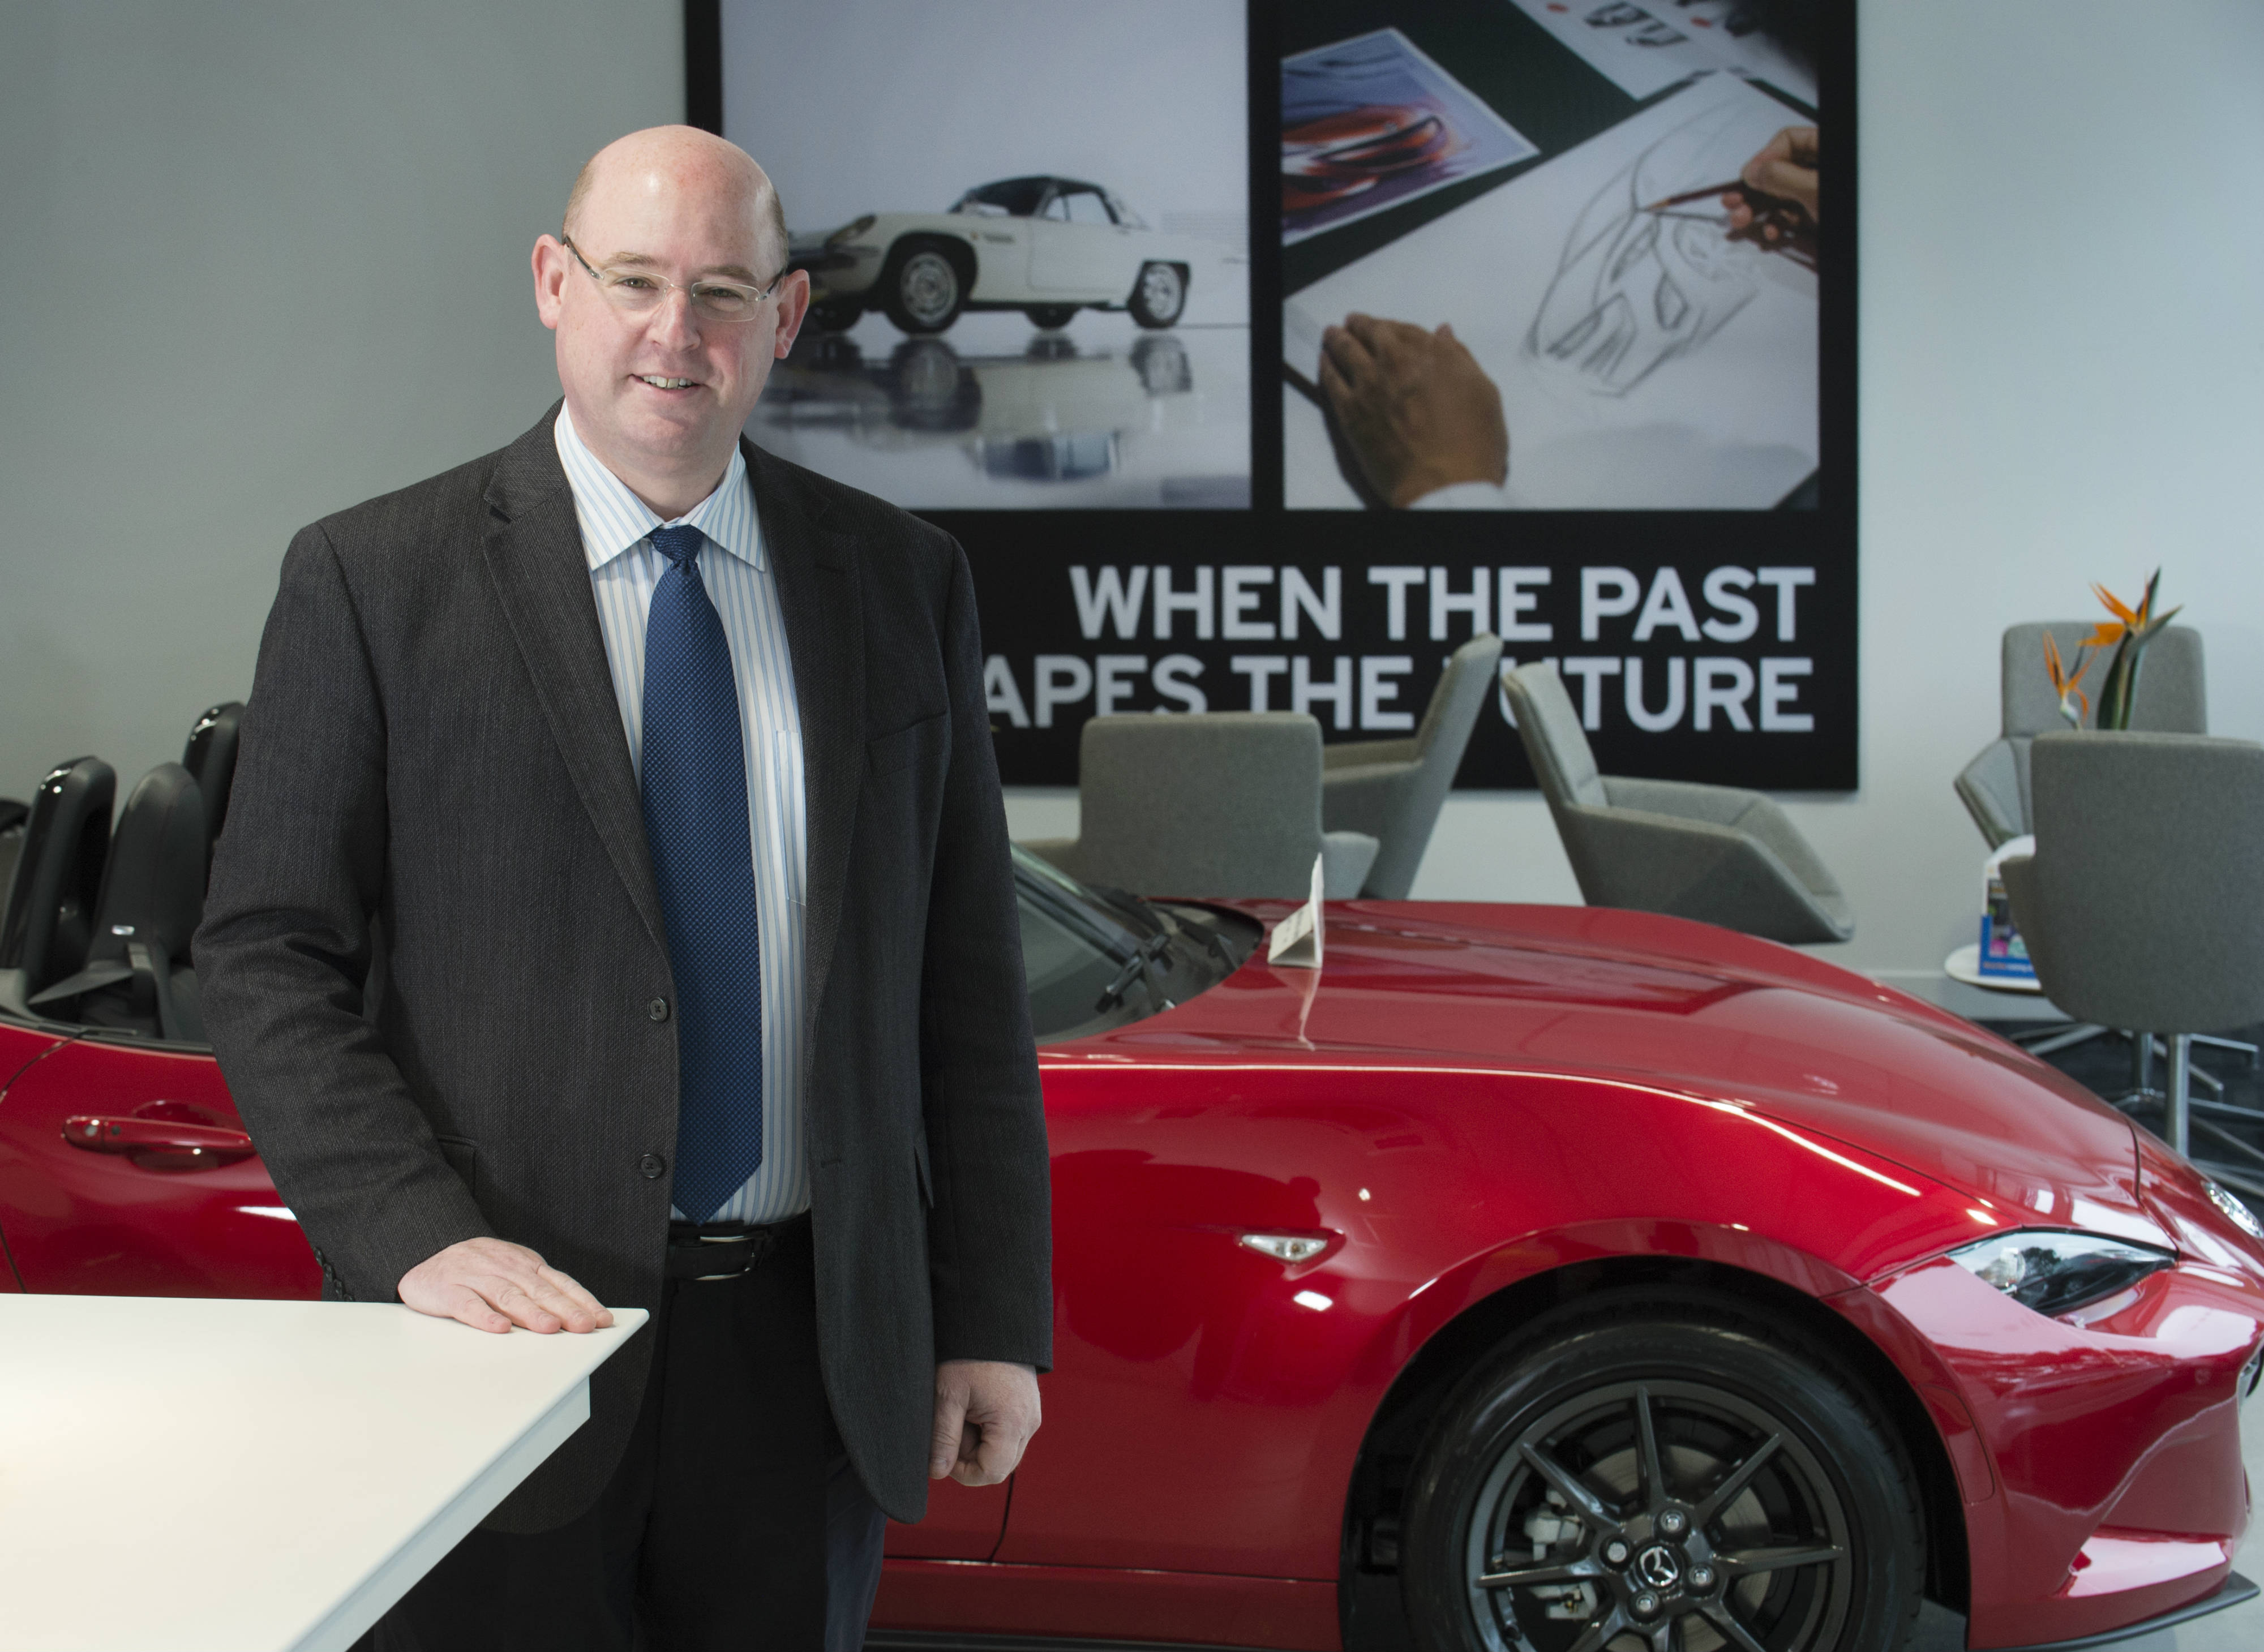 A day in the life of Barney Steele, dealer principal of Magna Mazda in Poole, Dorset